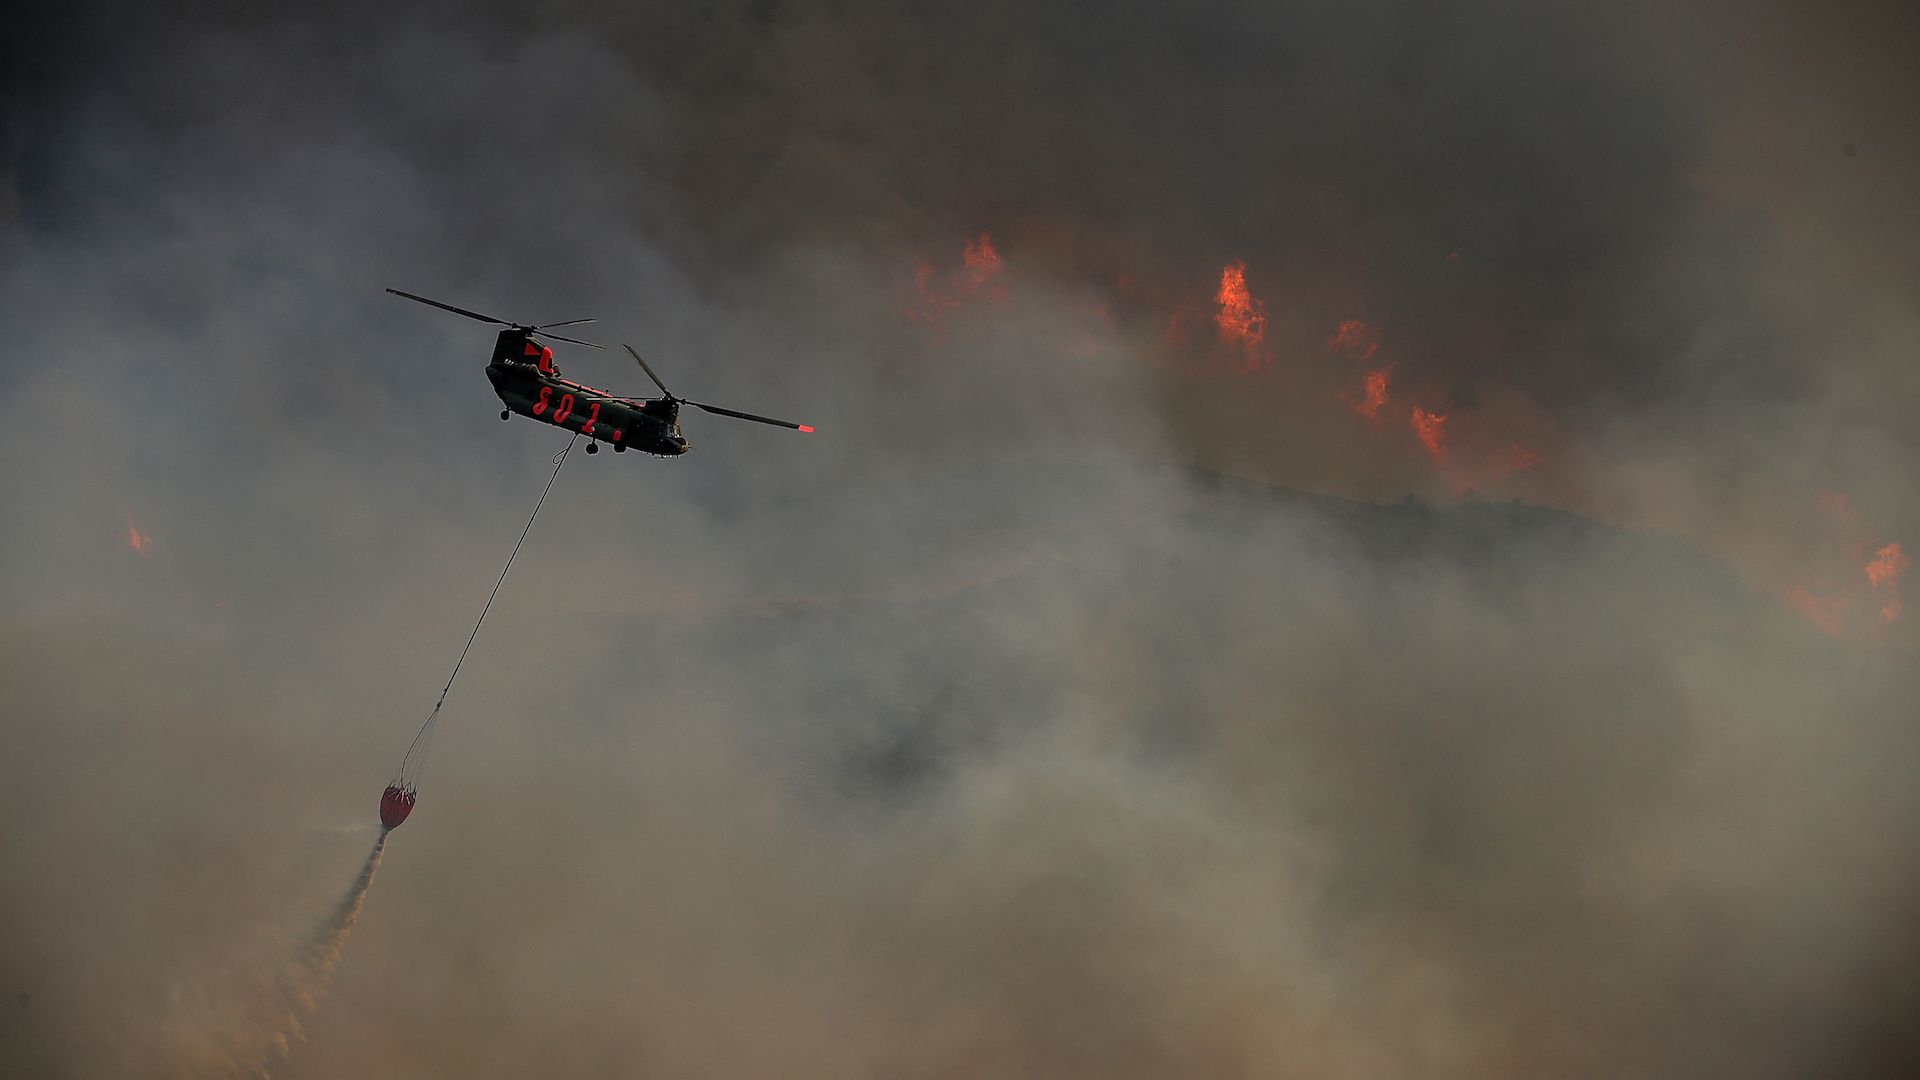 LAKEPORT, CA - JULY 31: A helicopter drops water on the River Fire as it burns through a canyon on July 31, 2018 in Lakeport, California.